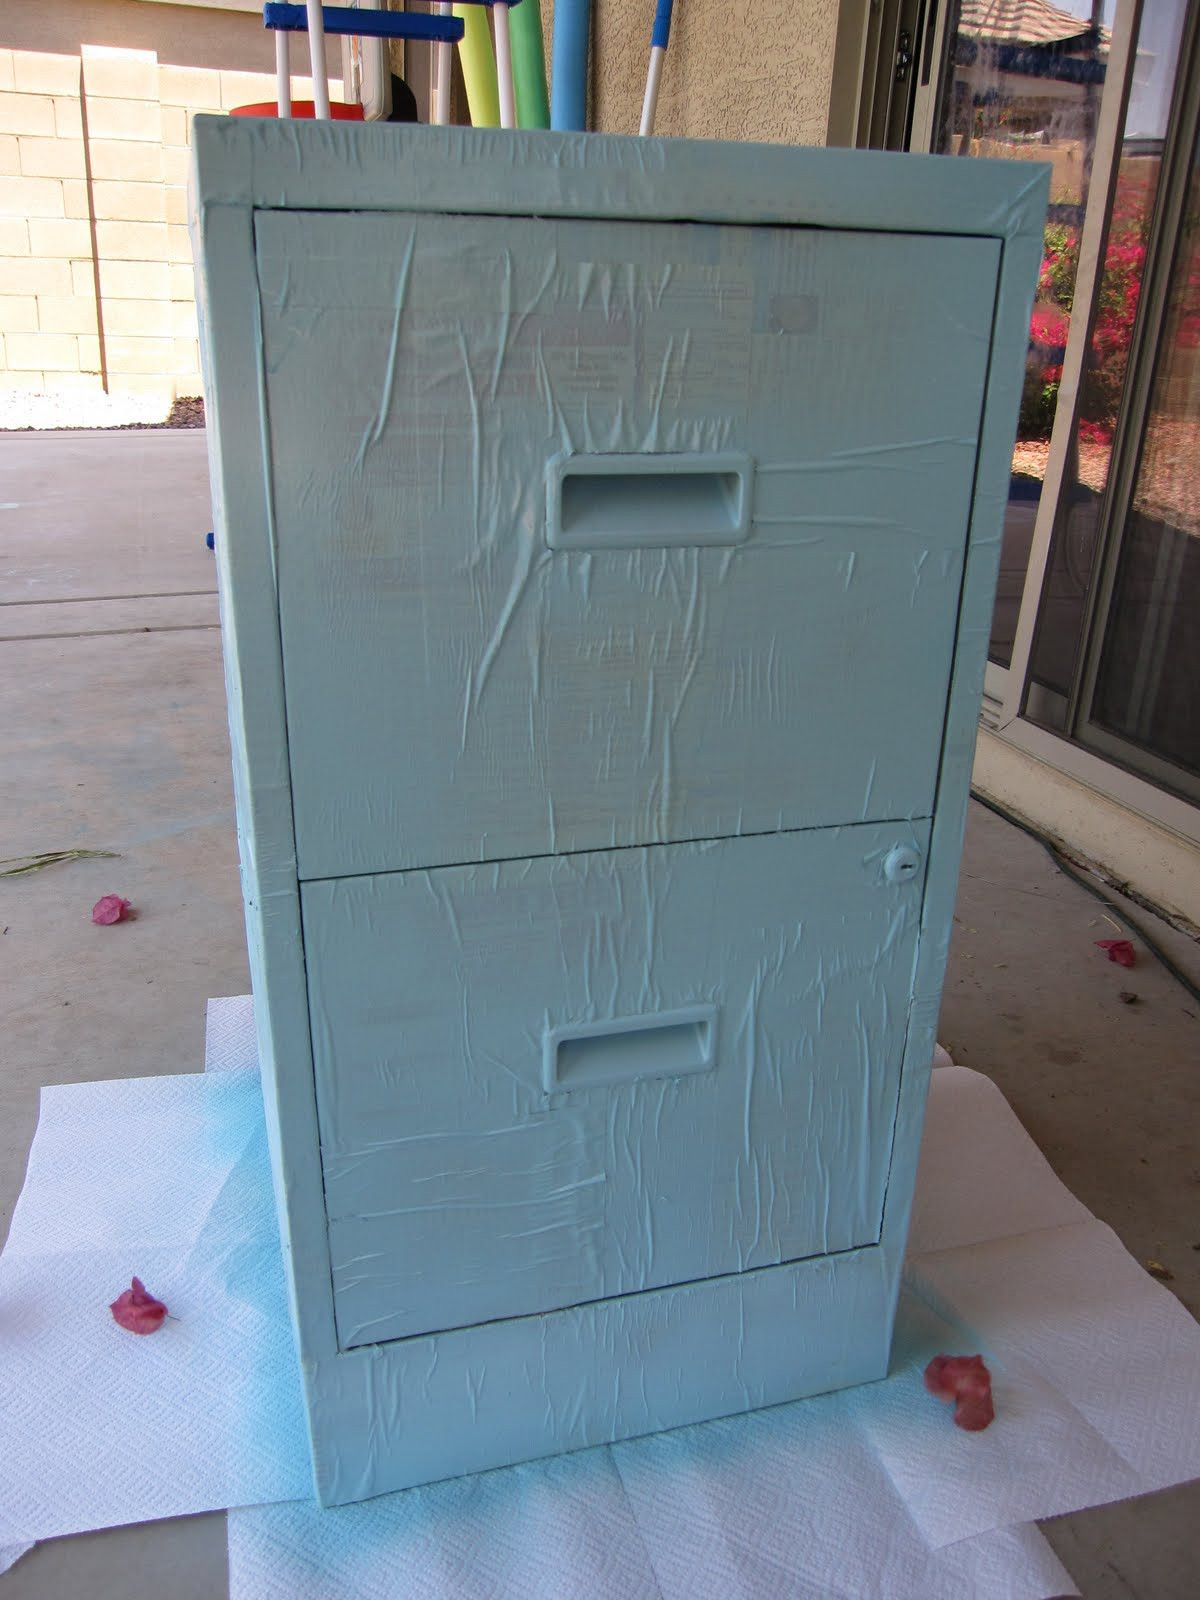 70 How To Spray Paint Metal File Cabinet Chalkboard Ideas For Kitchen Check More